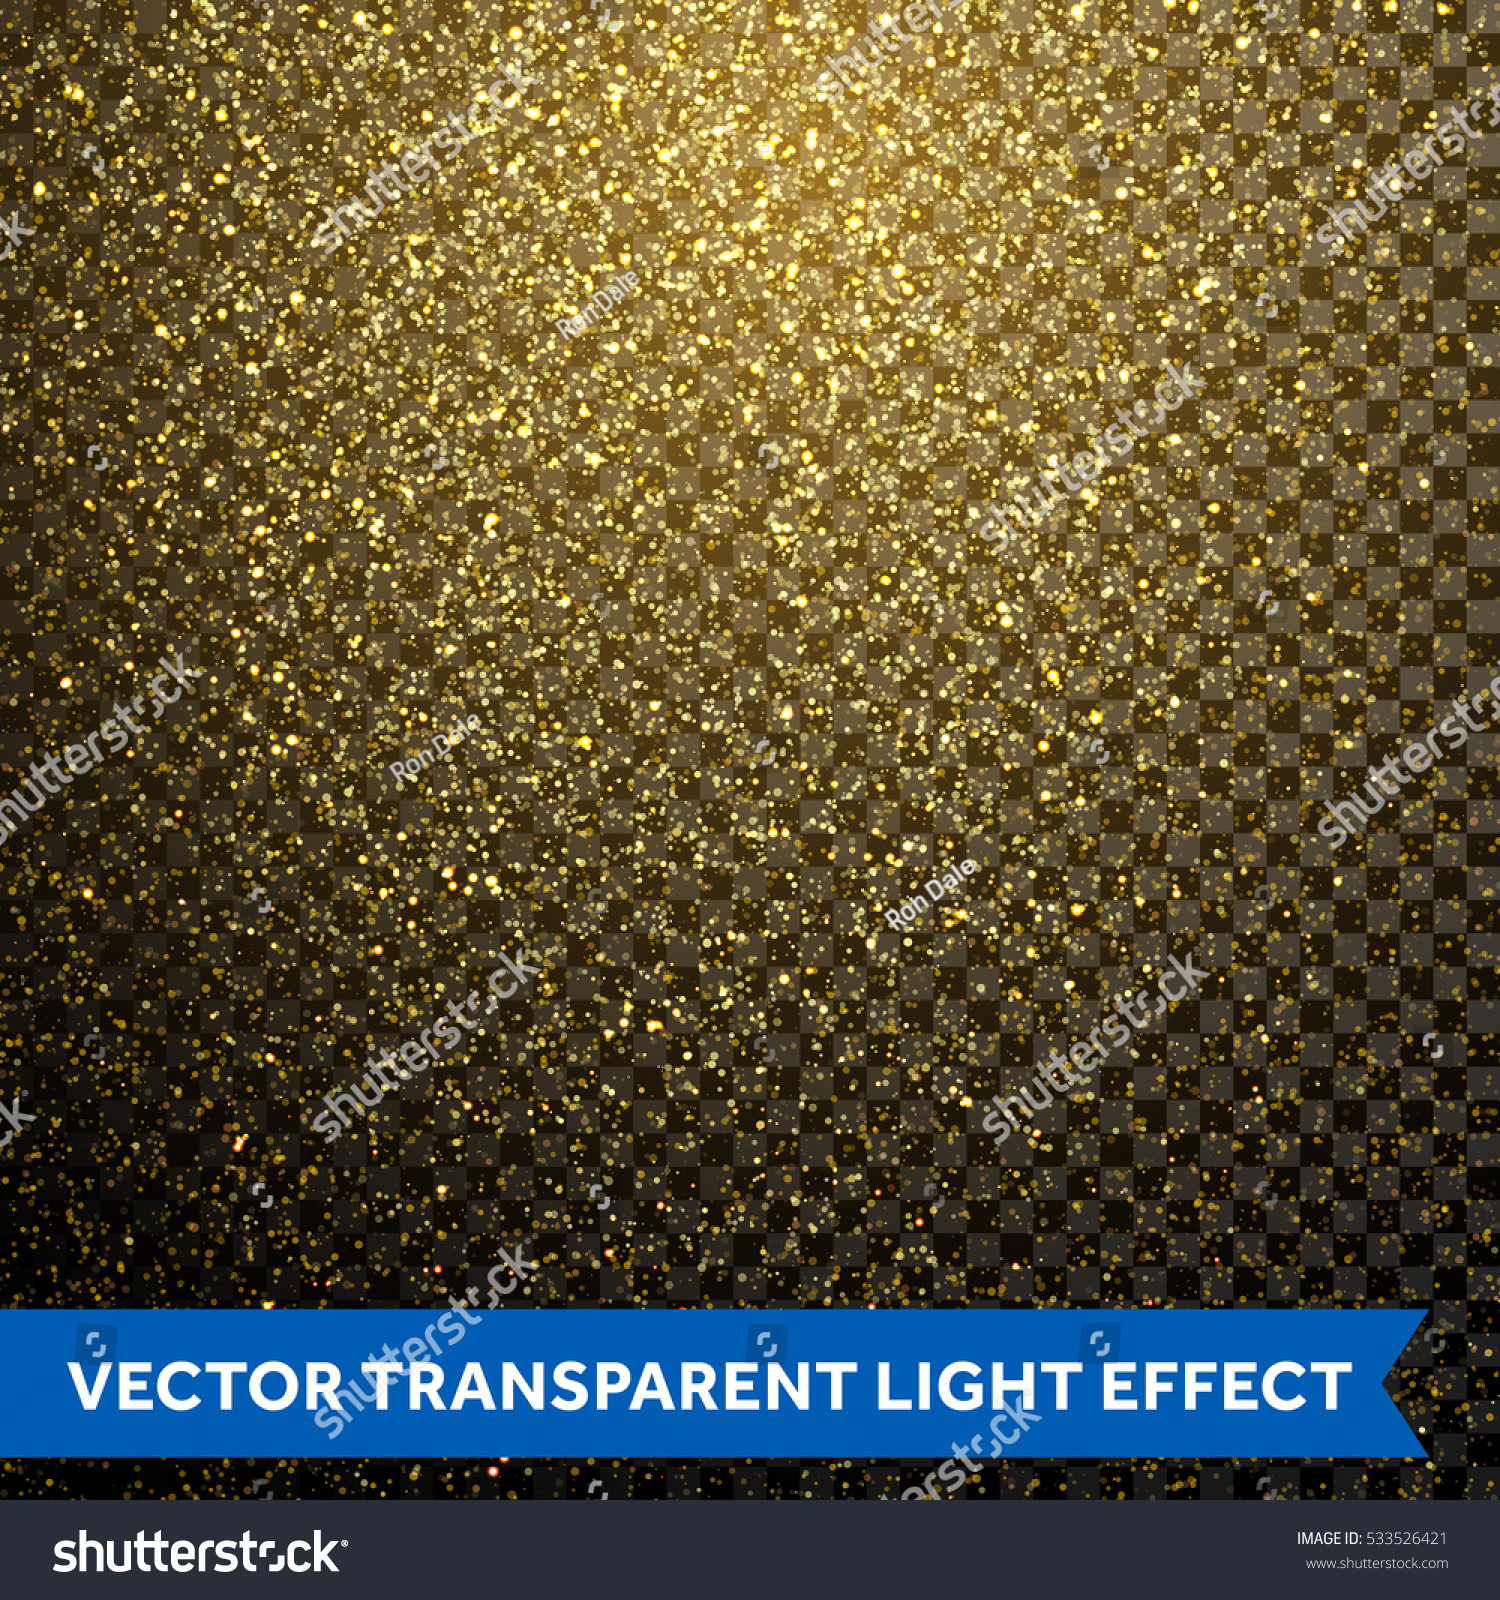 Gold glitter bright vector transparent background golden sparkles - Gold Glitter Particles On Transparent Background Cosmic Space Nebula Shine Vector Golden Dust Texture